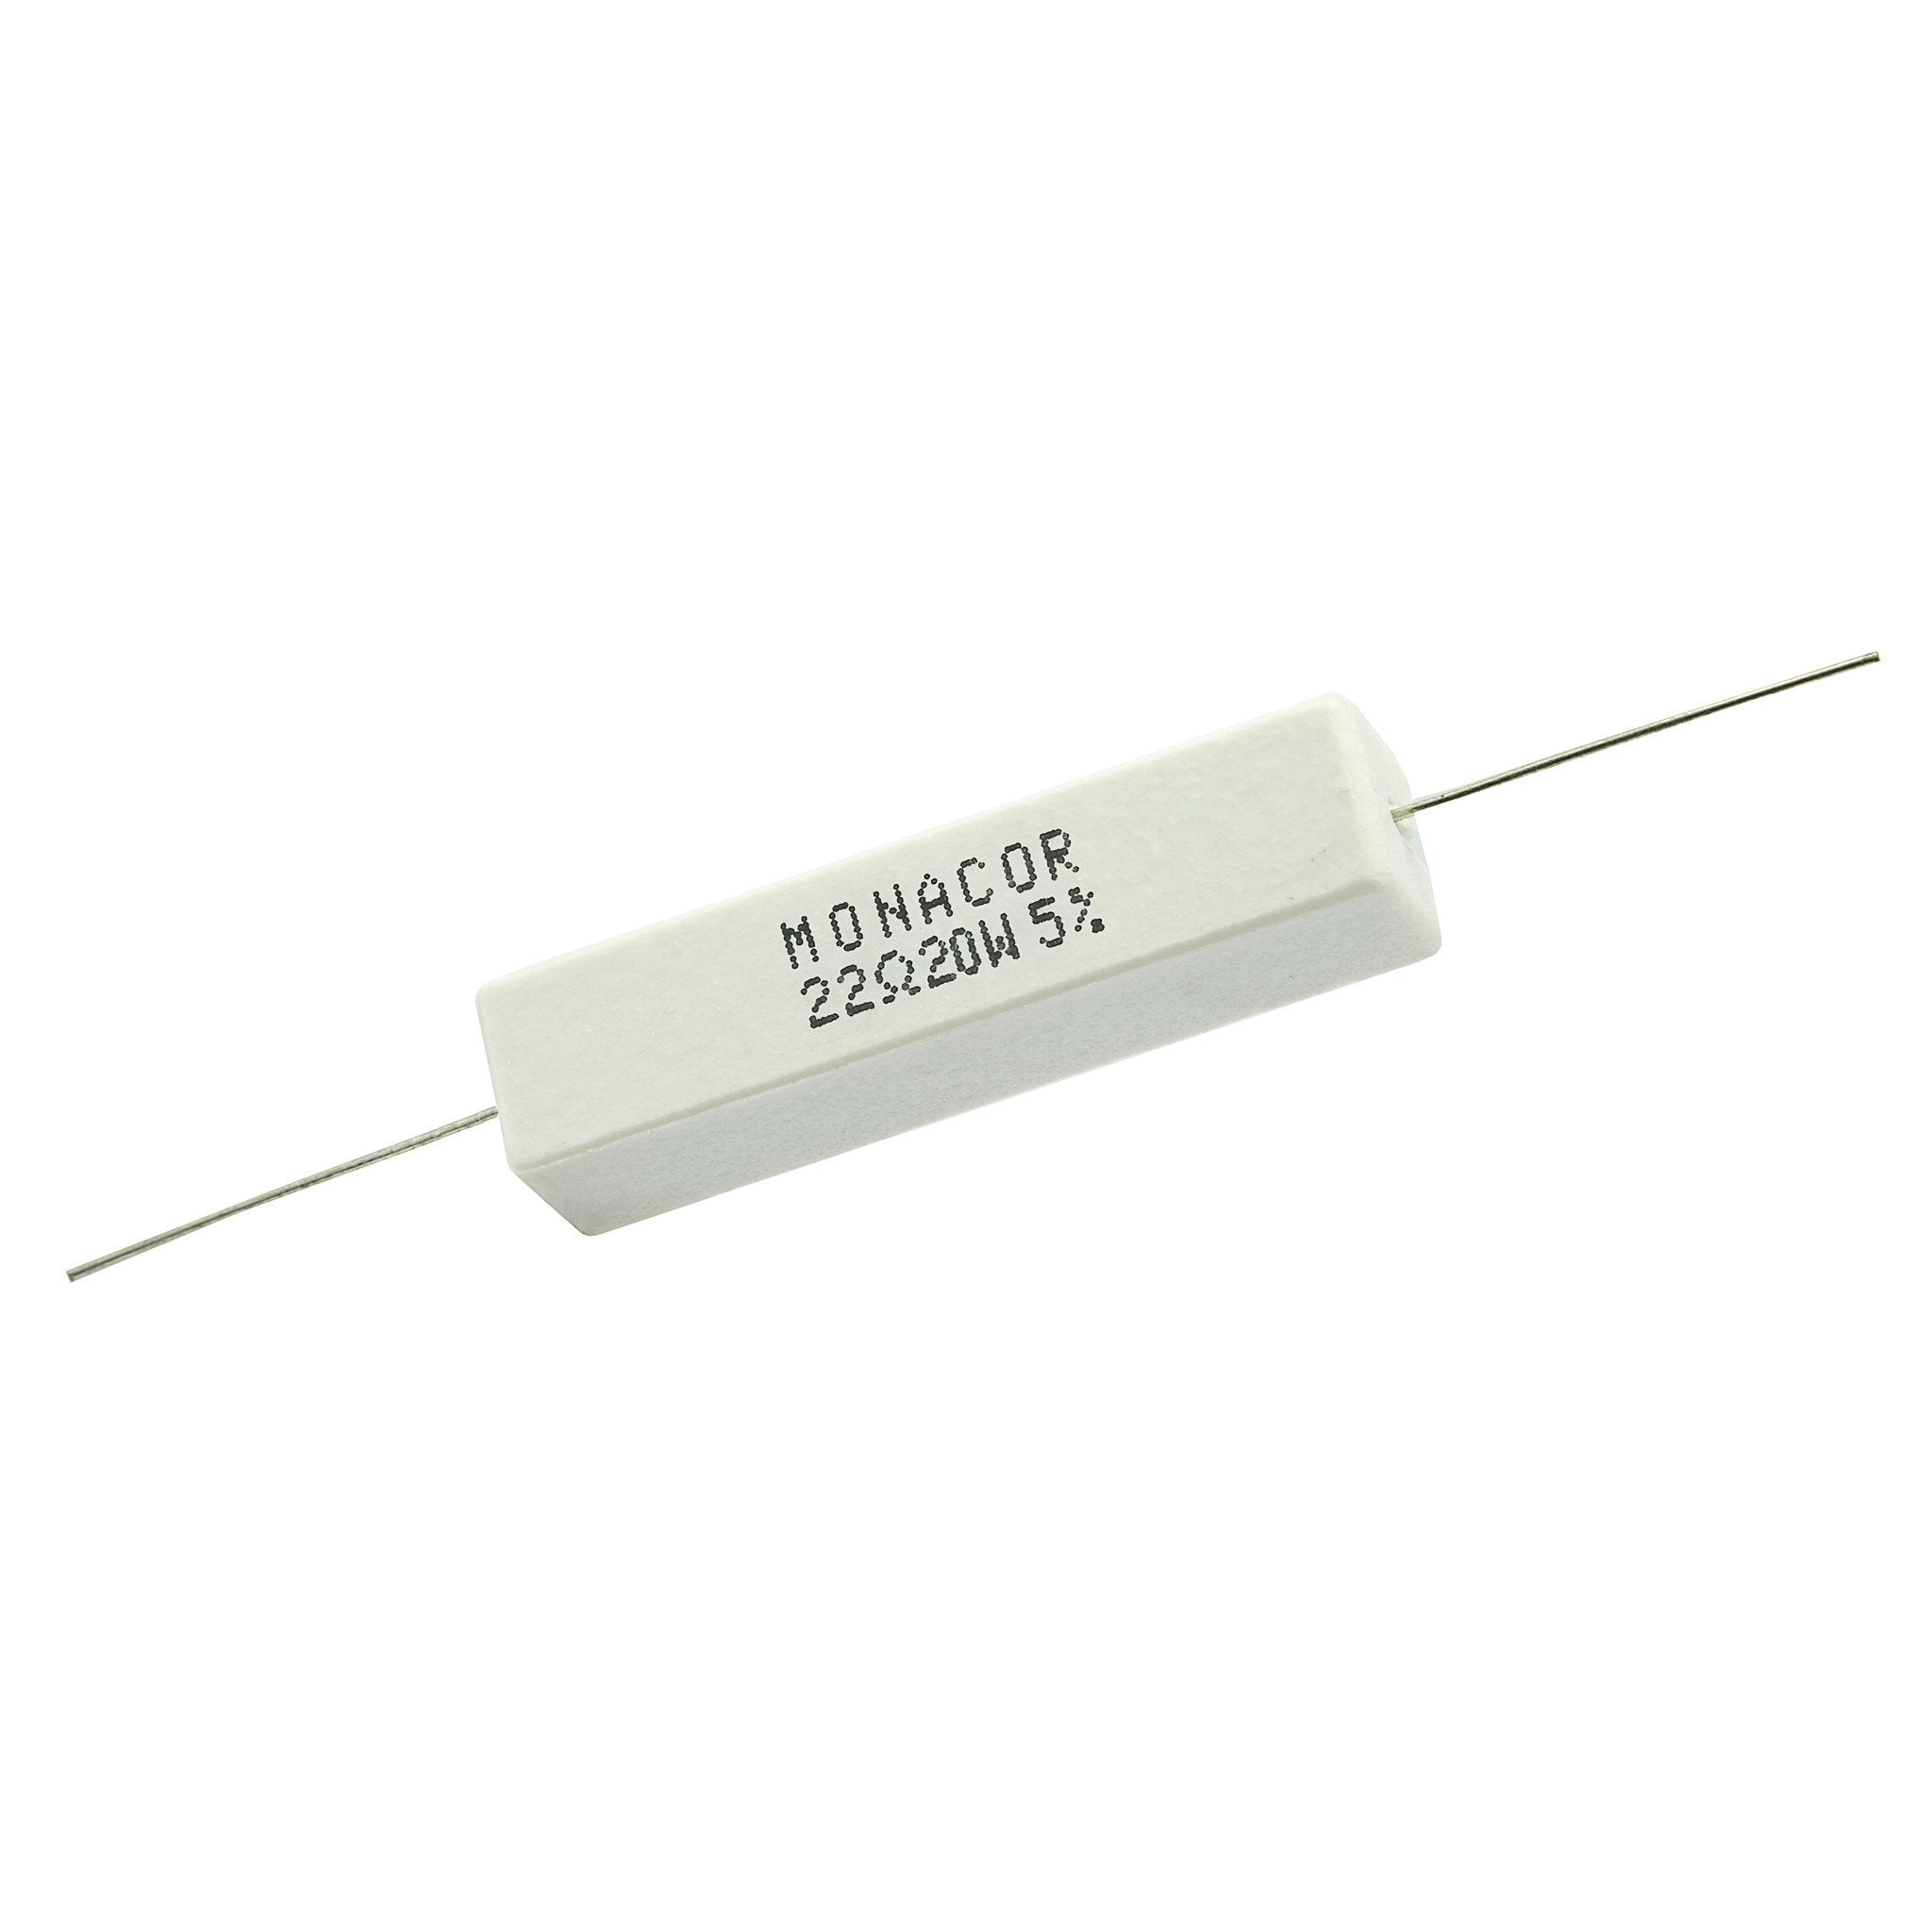 22 Ohm 20 Watt 5% Ceramic Wirewound Resistor - Willys-Hifi Ltd